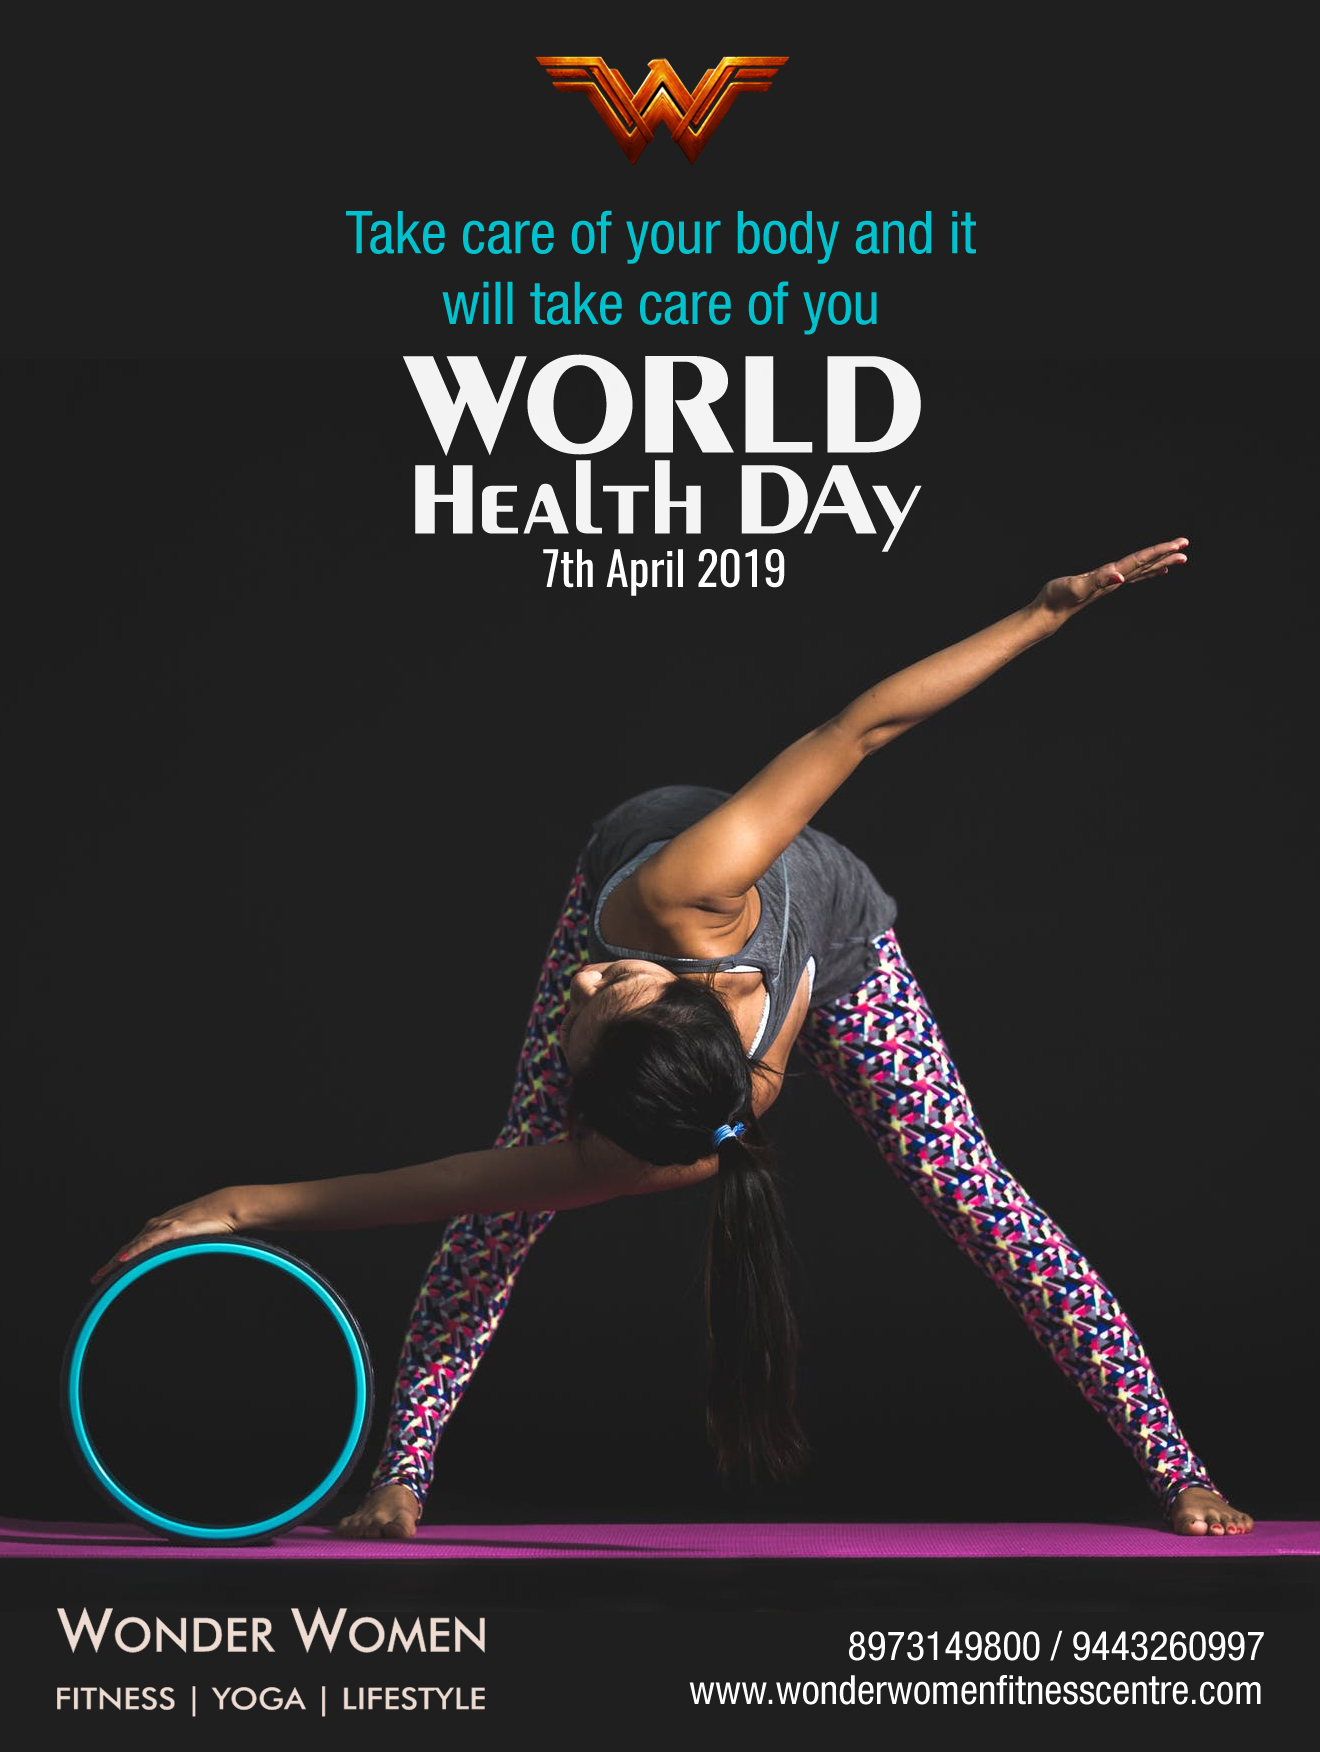 World Health Day - 7th April 2019